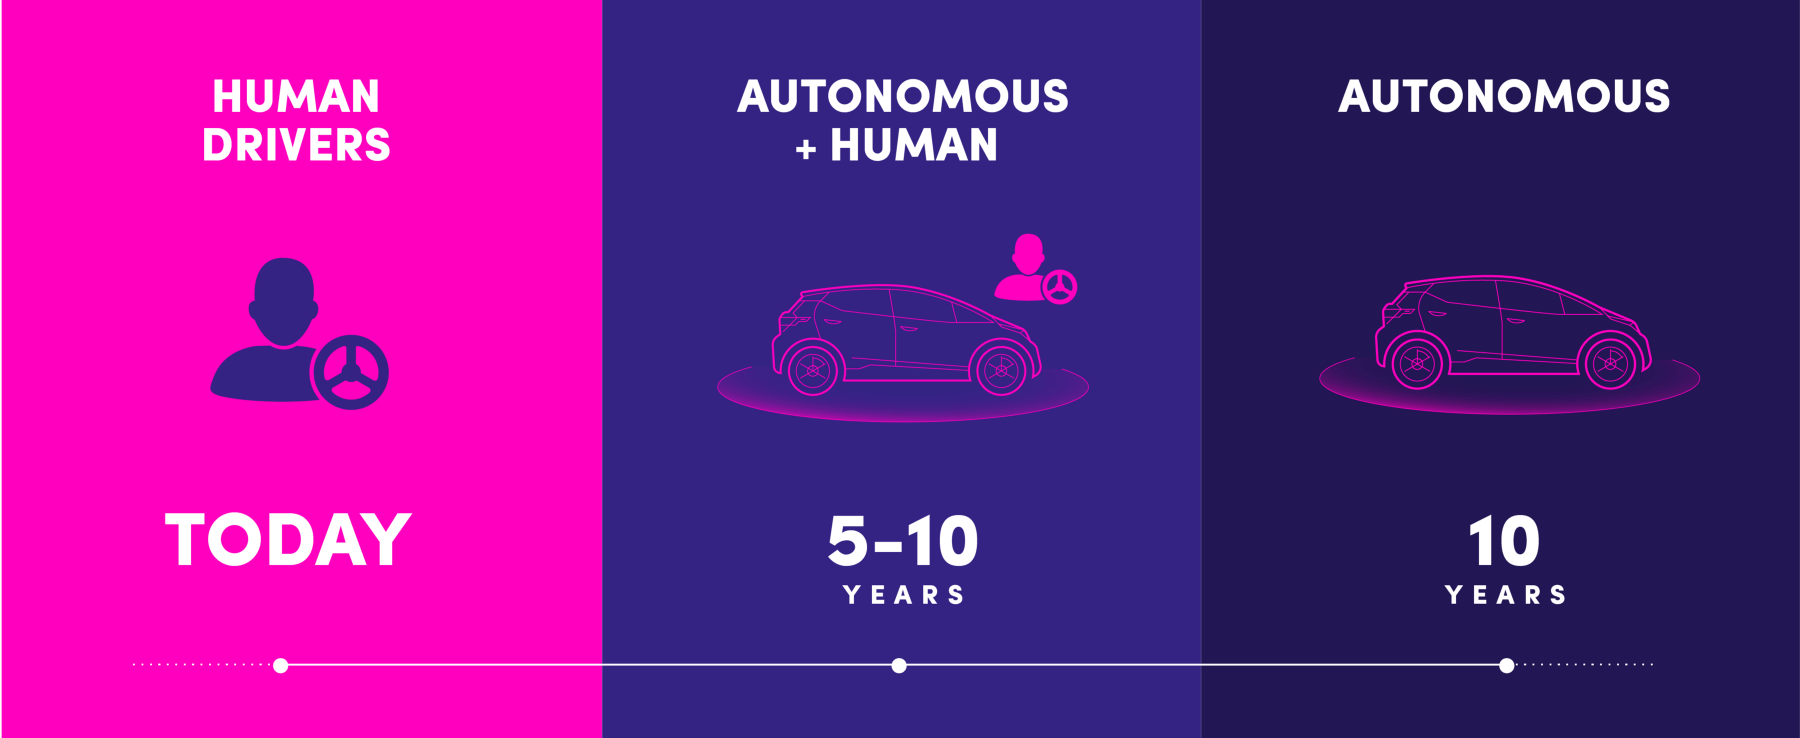 timeline of human drivers